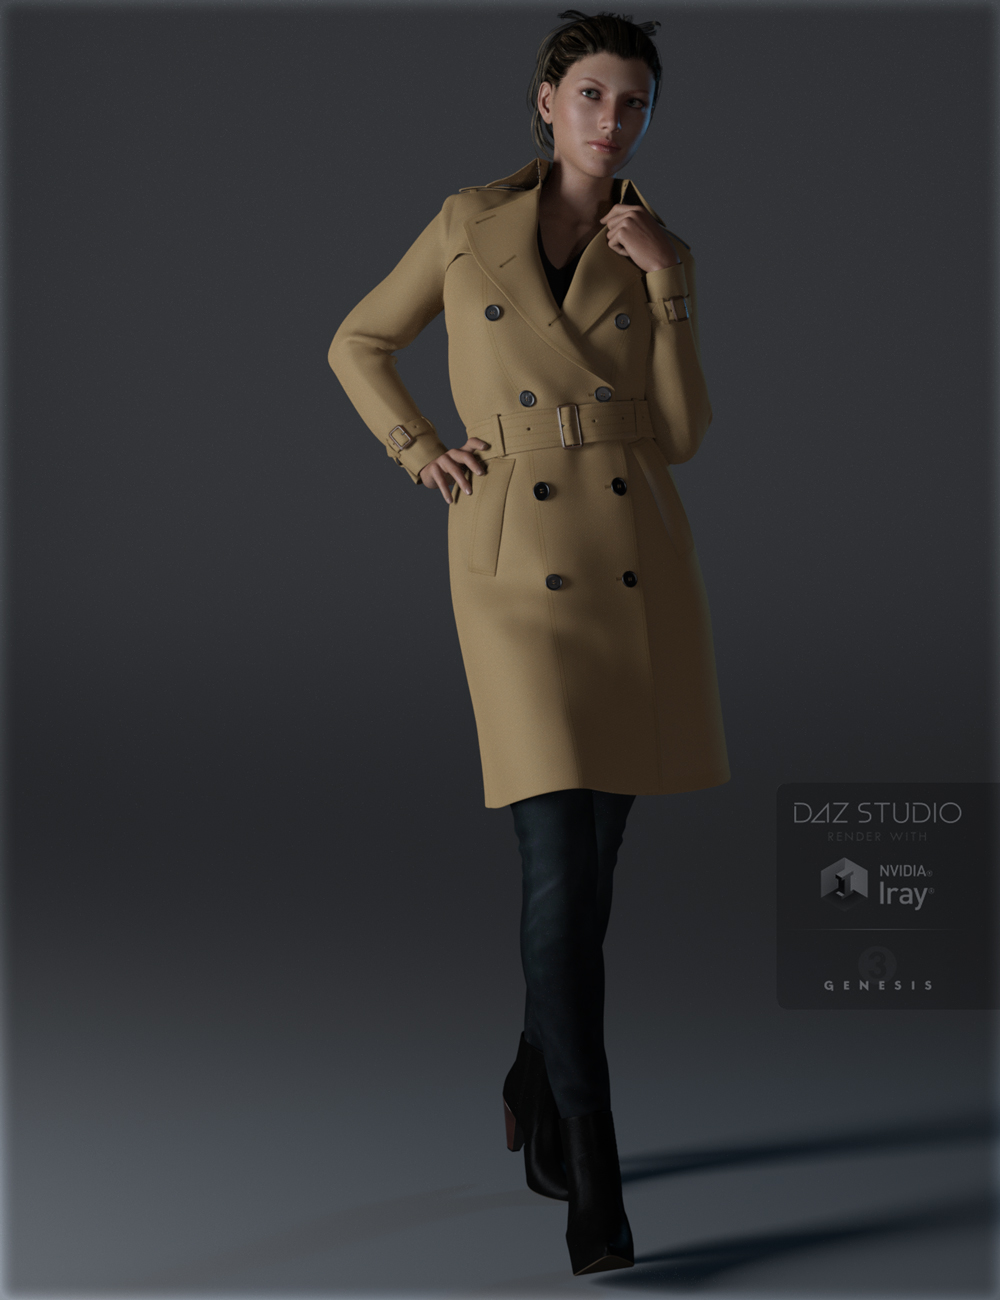 Trench Coat Outfit for Genesis 3 Female(s) by: IH Kang, 3D Models by Daz 3D